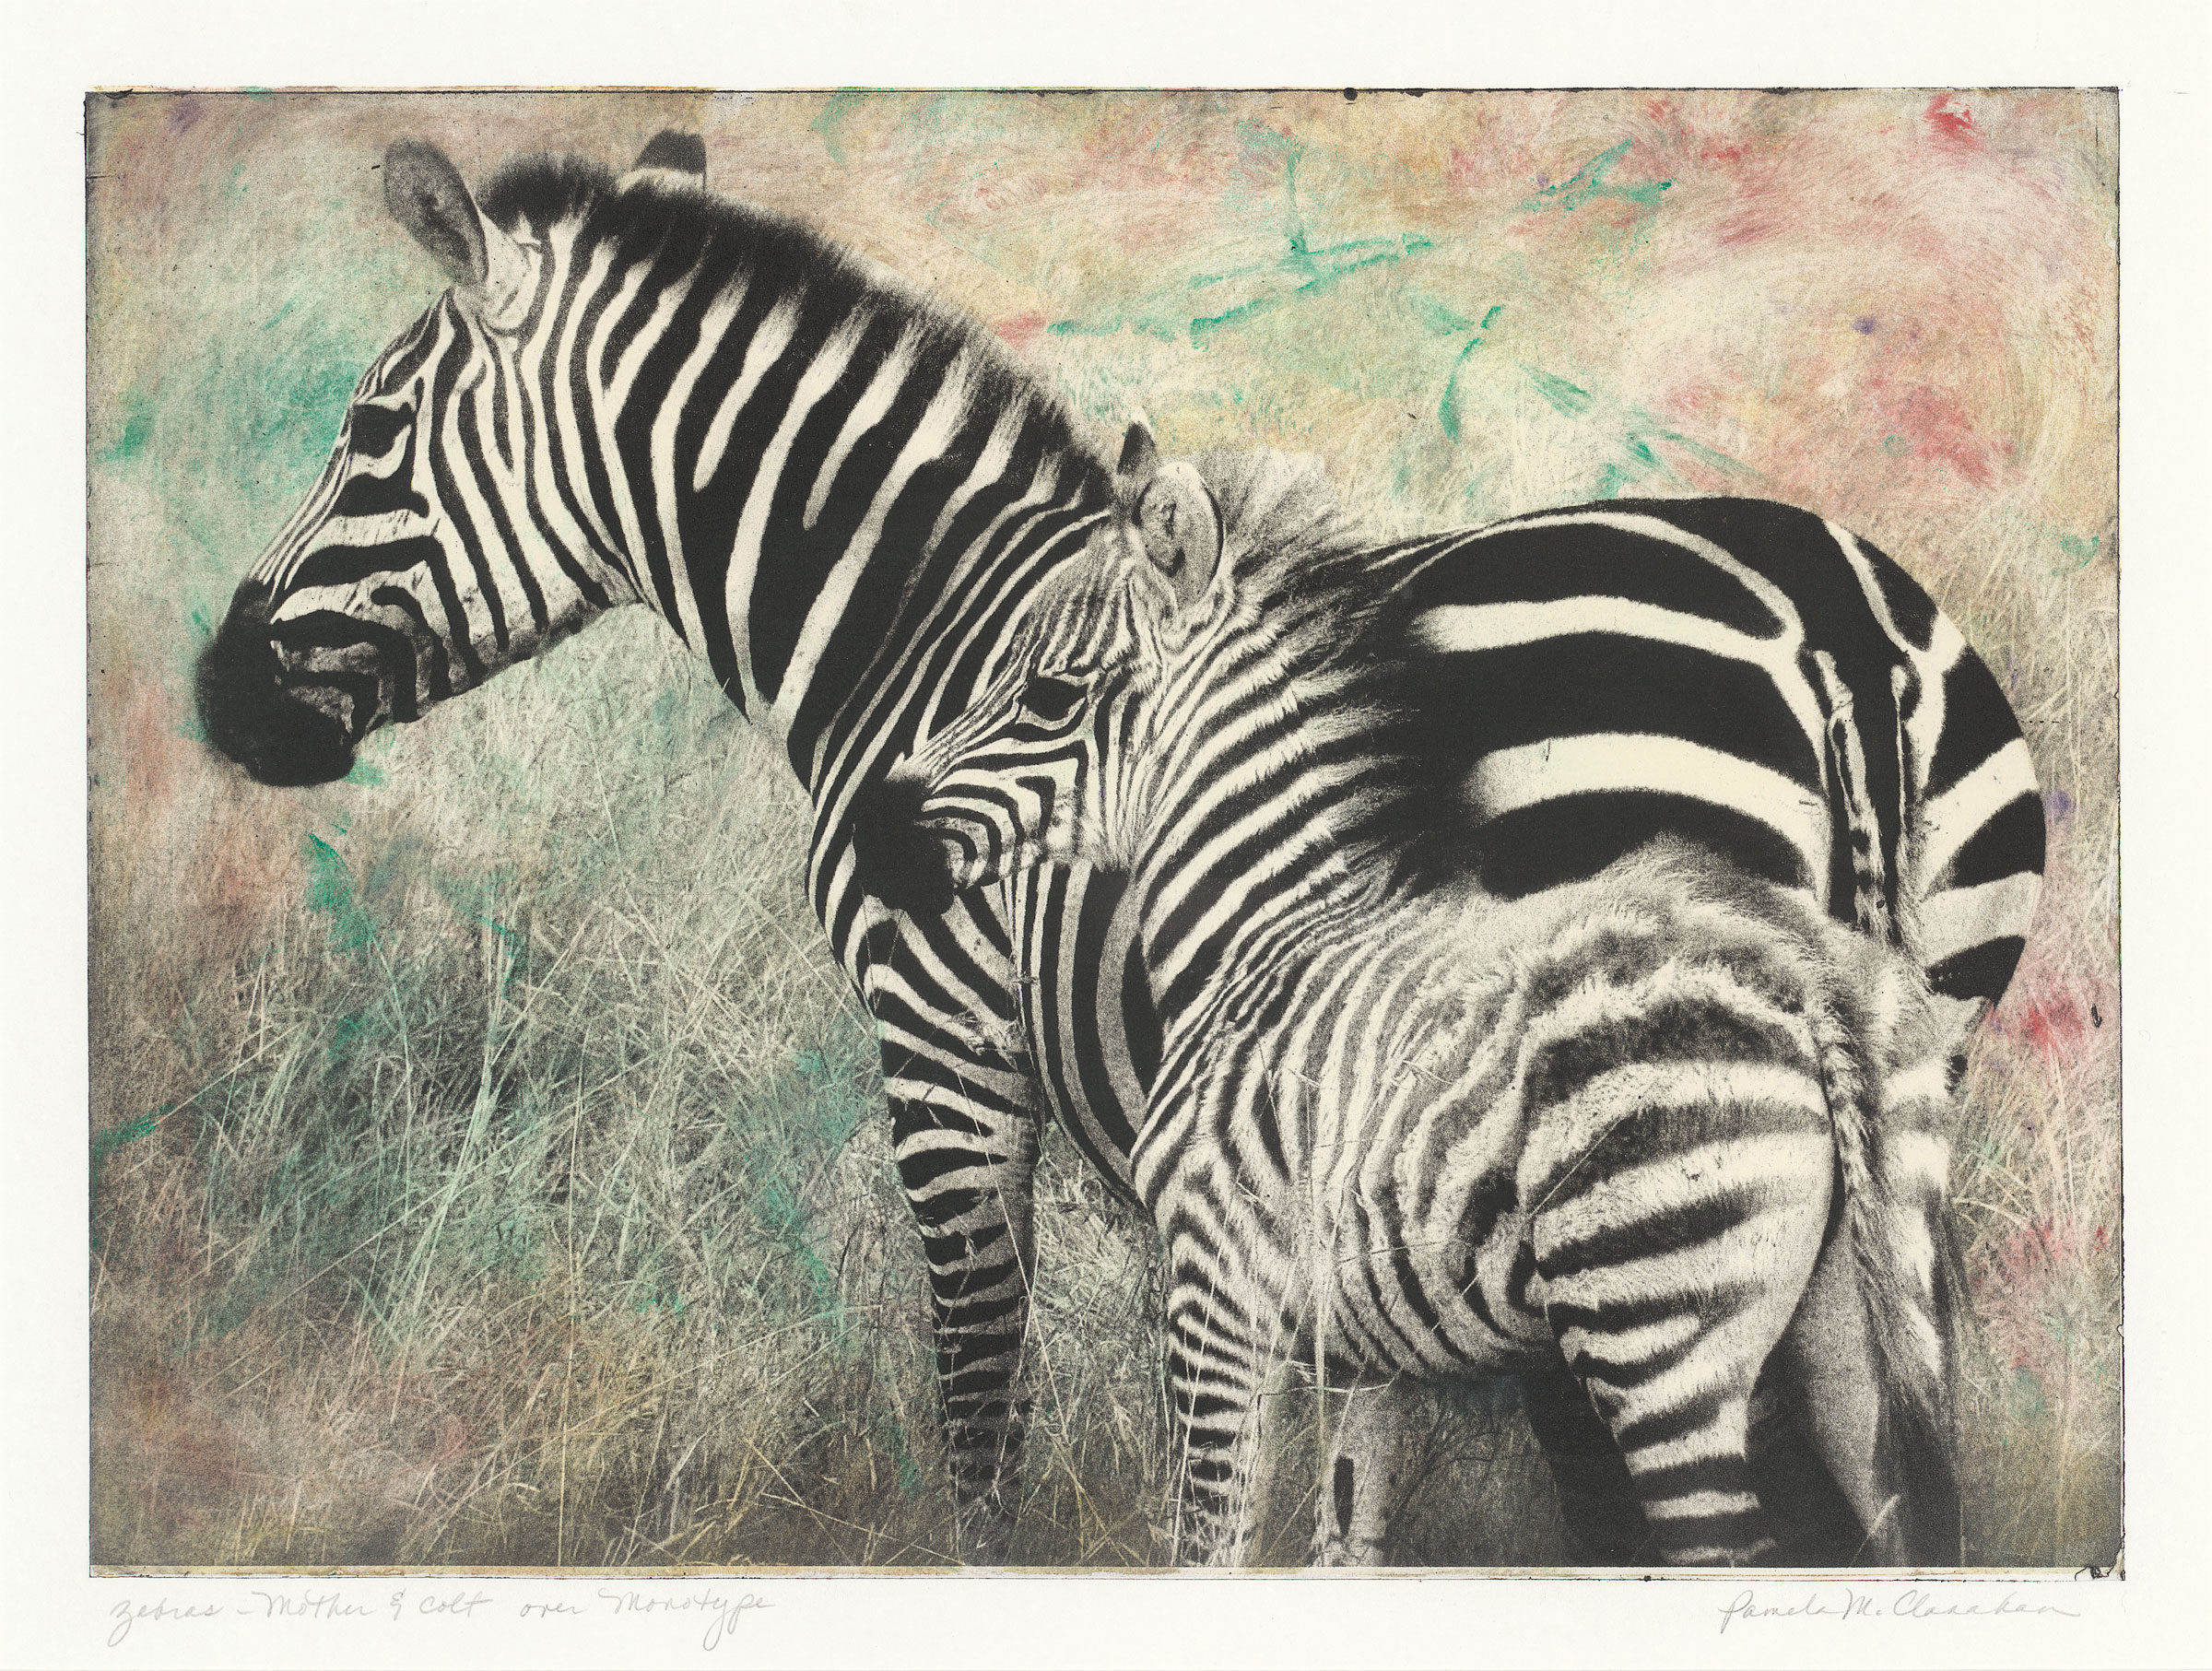 "This print was made while working with Ron Pokrasso in Santa Fe, New Mexico. I made this photograph while on safari in Kenya, then converted it to an ""ImagOn"" plate for Intaglio print-making. First I made a larger monotype plate with some varied color and marks, then wiped away the color where the zebras would print. I love the result. The original hangs in my breakfast nook; Archival Giclee prints are available in various sizes. Please contact me for more information."